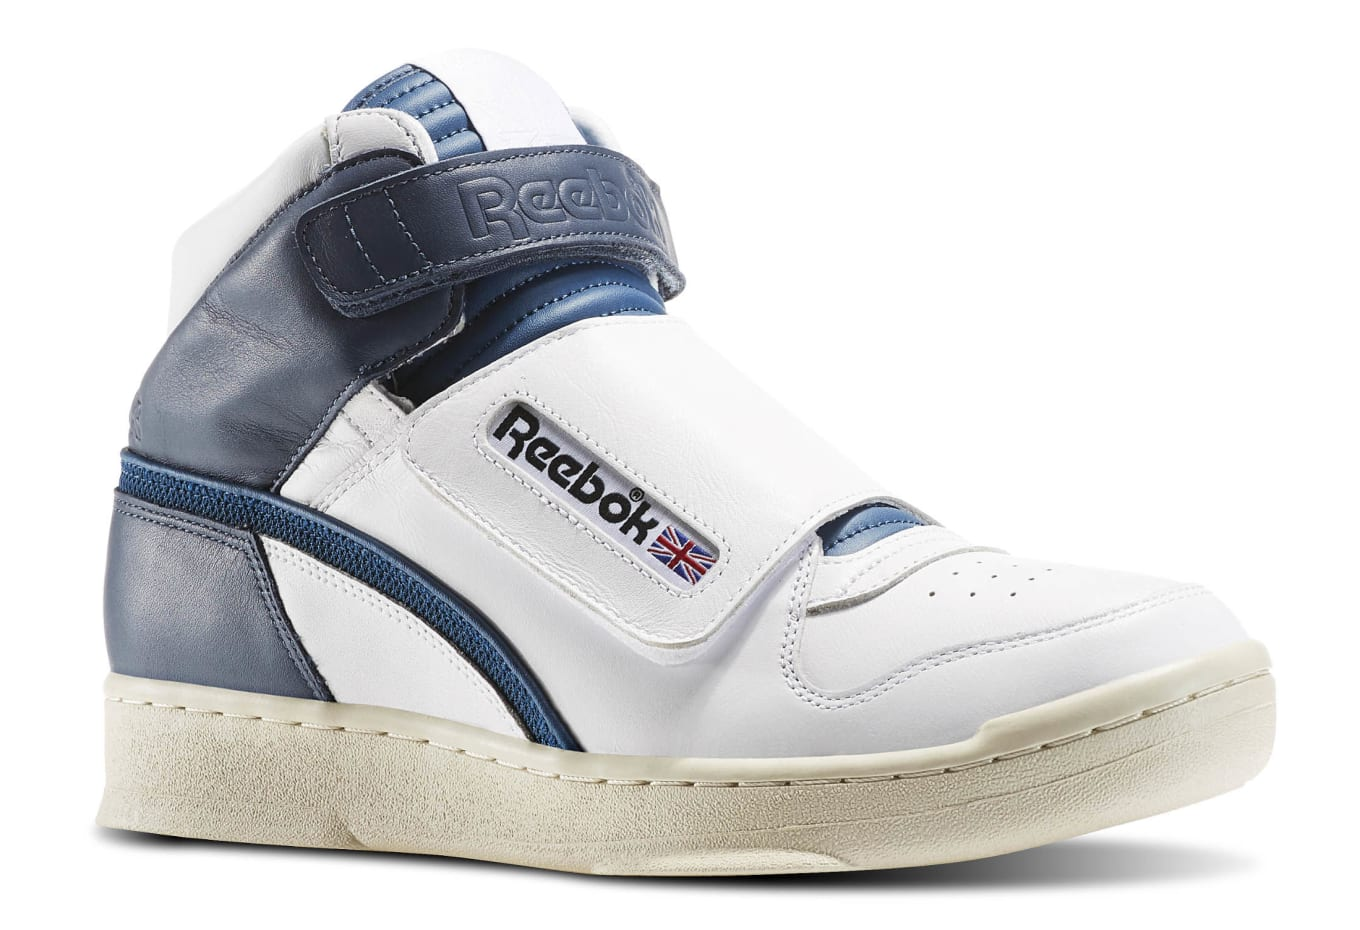 7bc4228478044 A new colorway of the Reebok Alien Stomper is available.